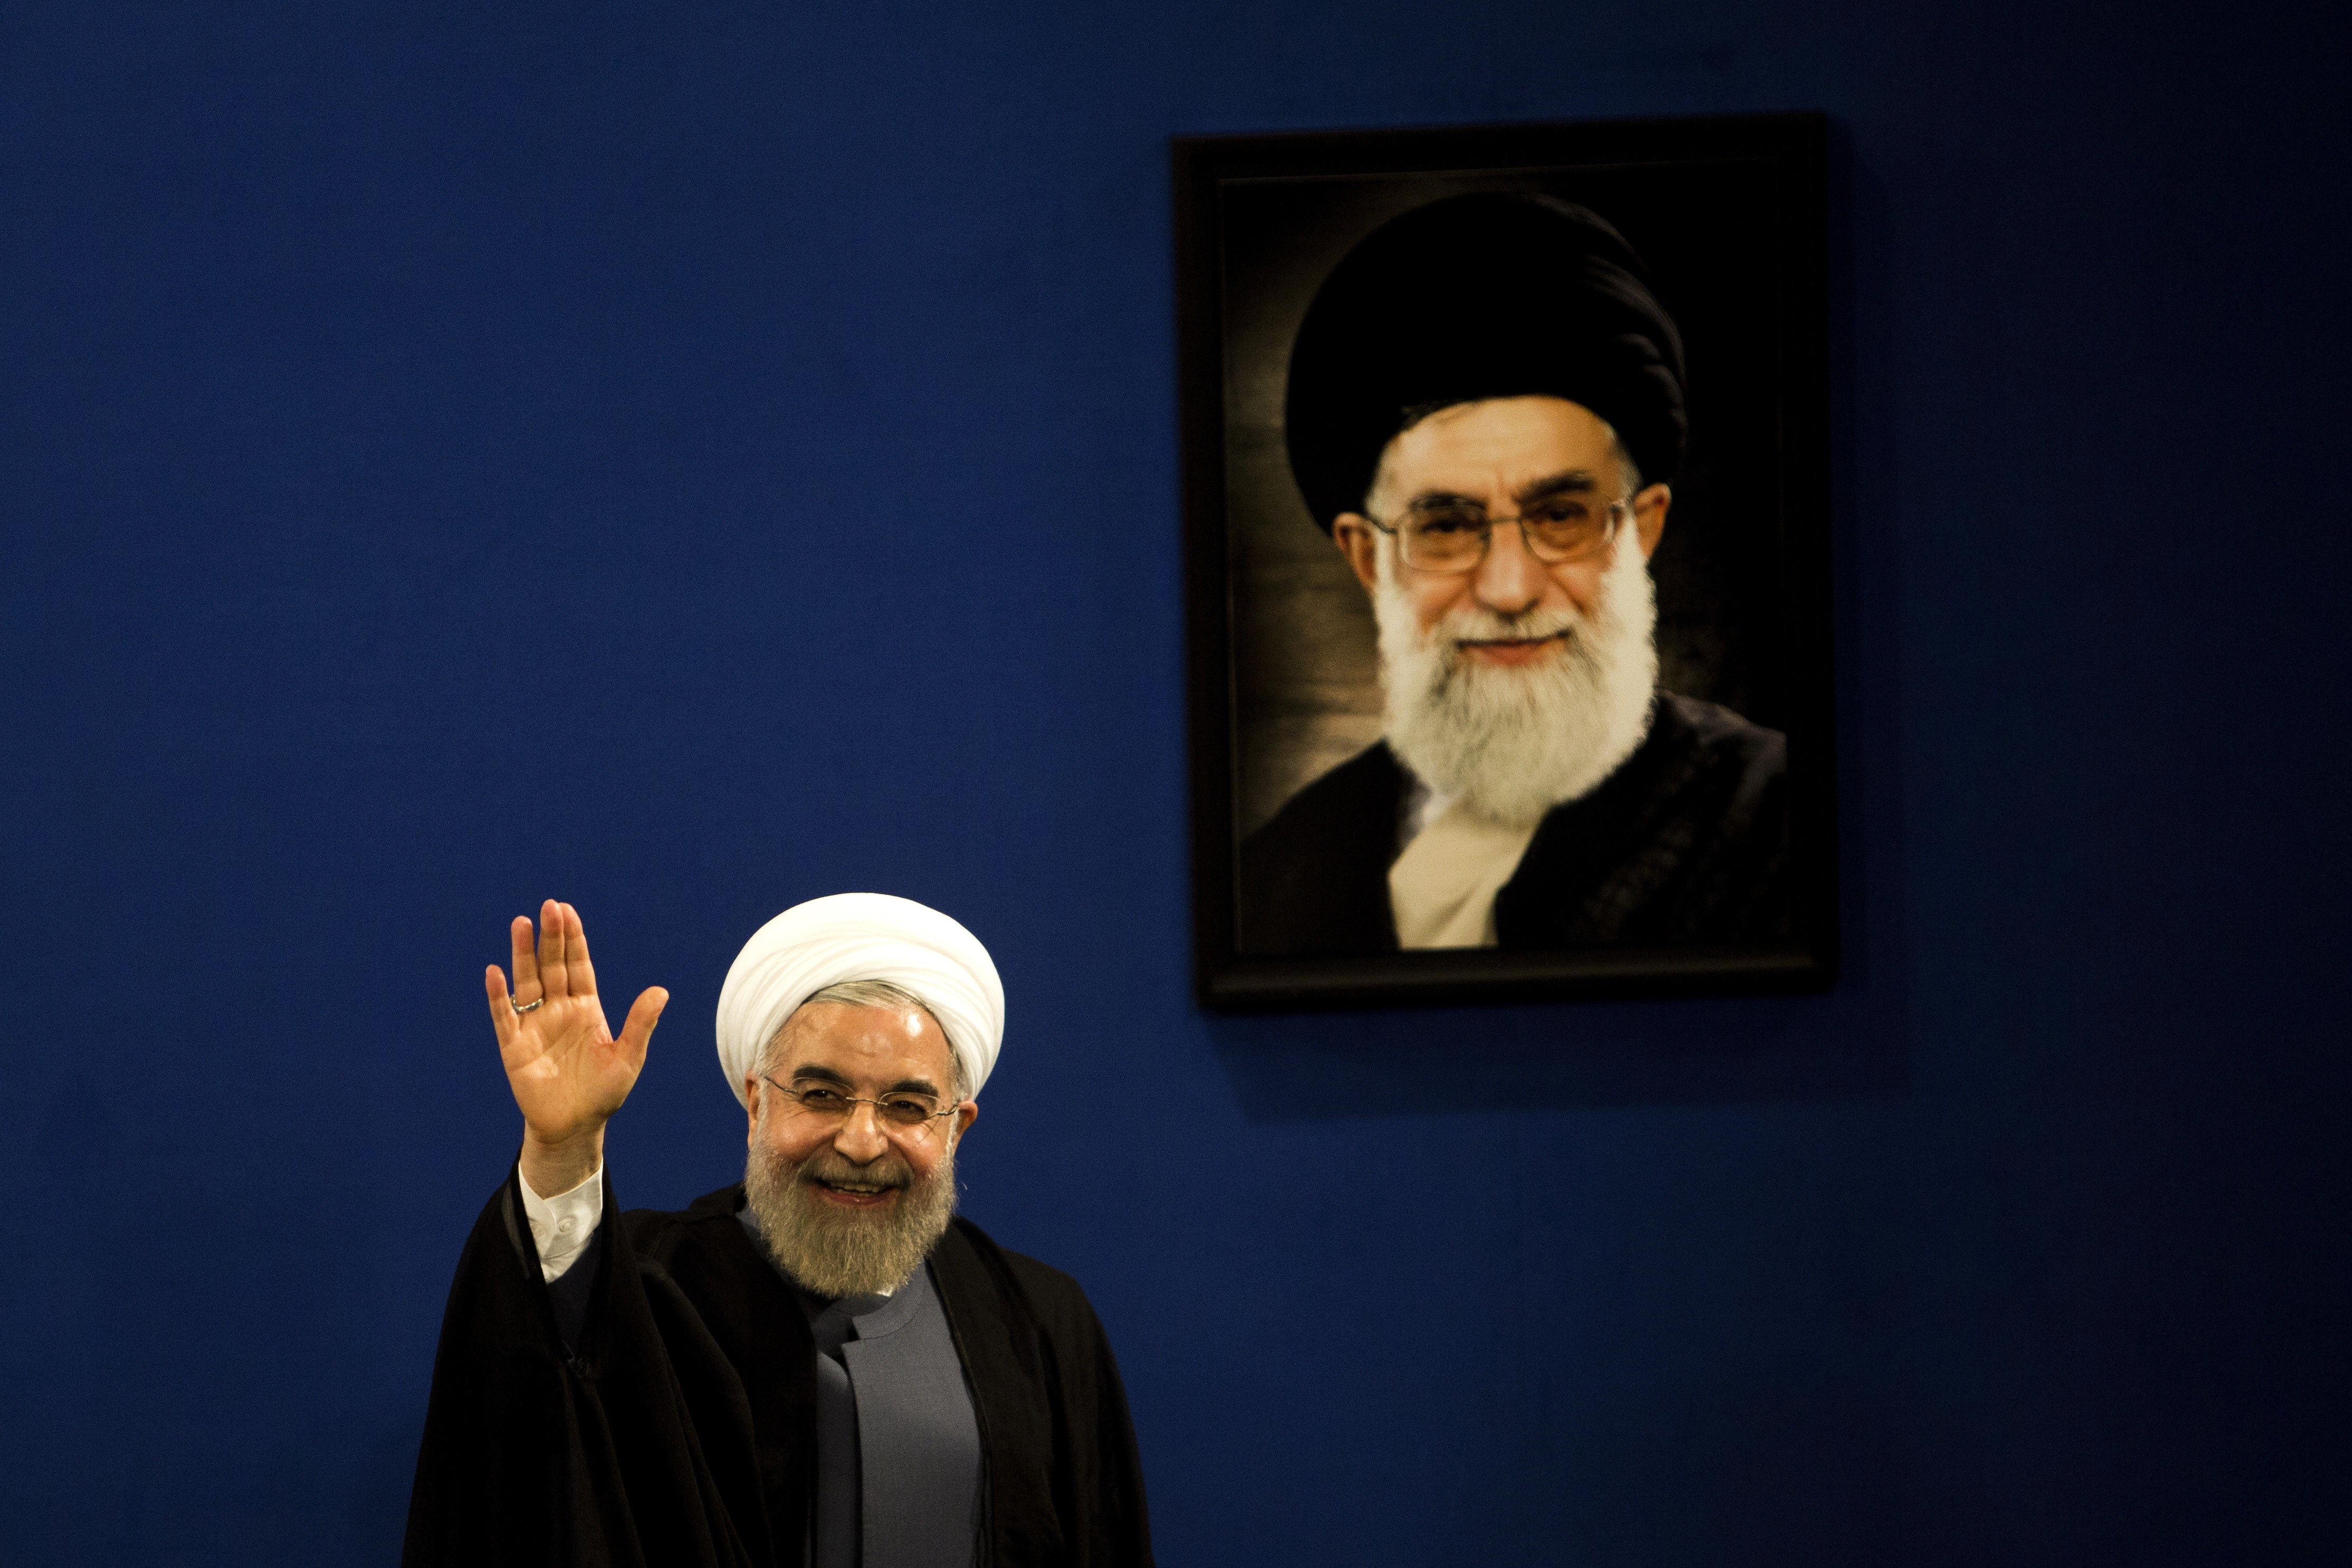 Iranian President Hassan Rouhani waves to journalists next to a portrait of supreme leader Ayatollah Ali Khamenei (R) at the end of a press conference in Tehran on June 13, 2015. (BEHROUZ MEHRI/AFP/Getty Images)